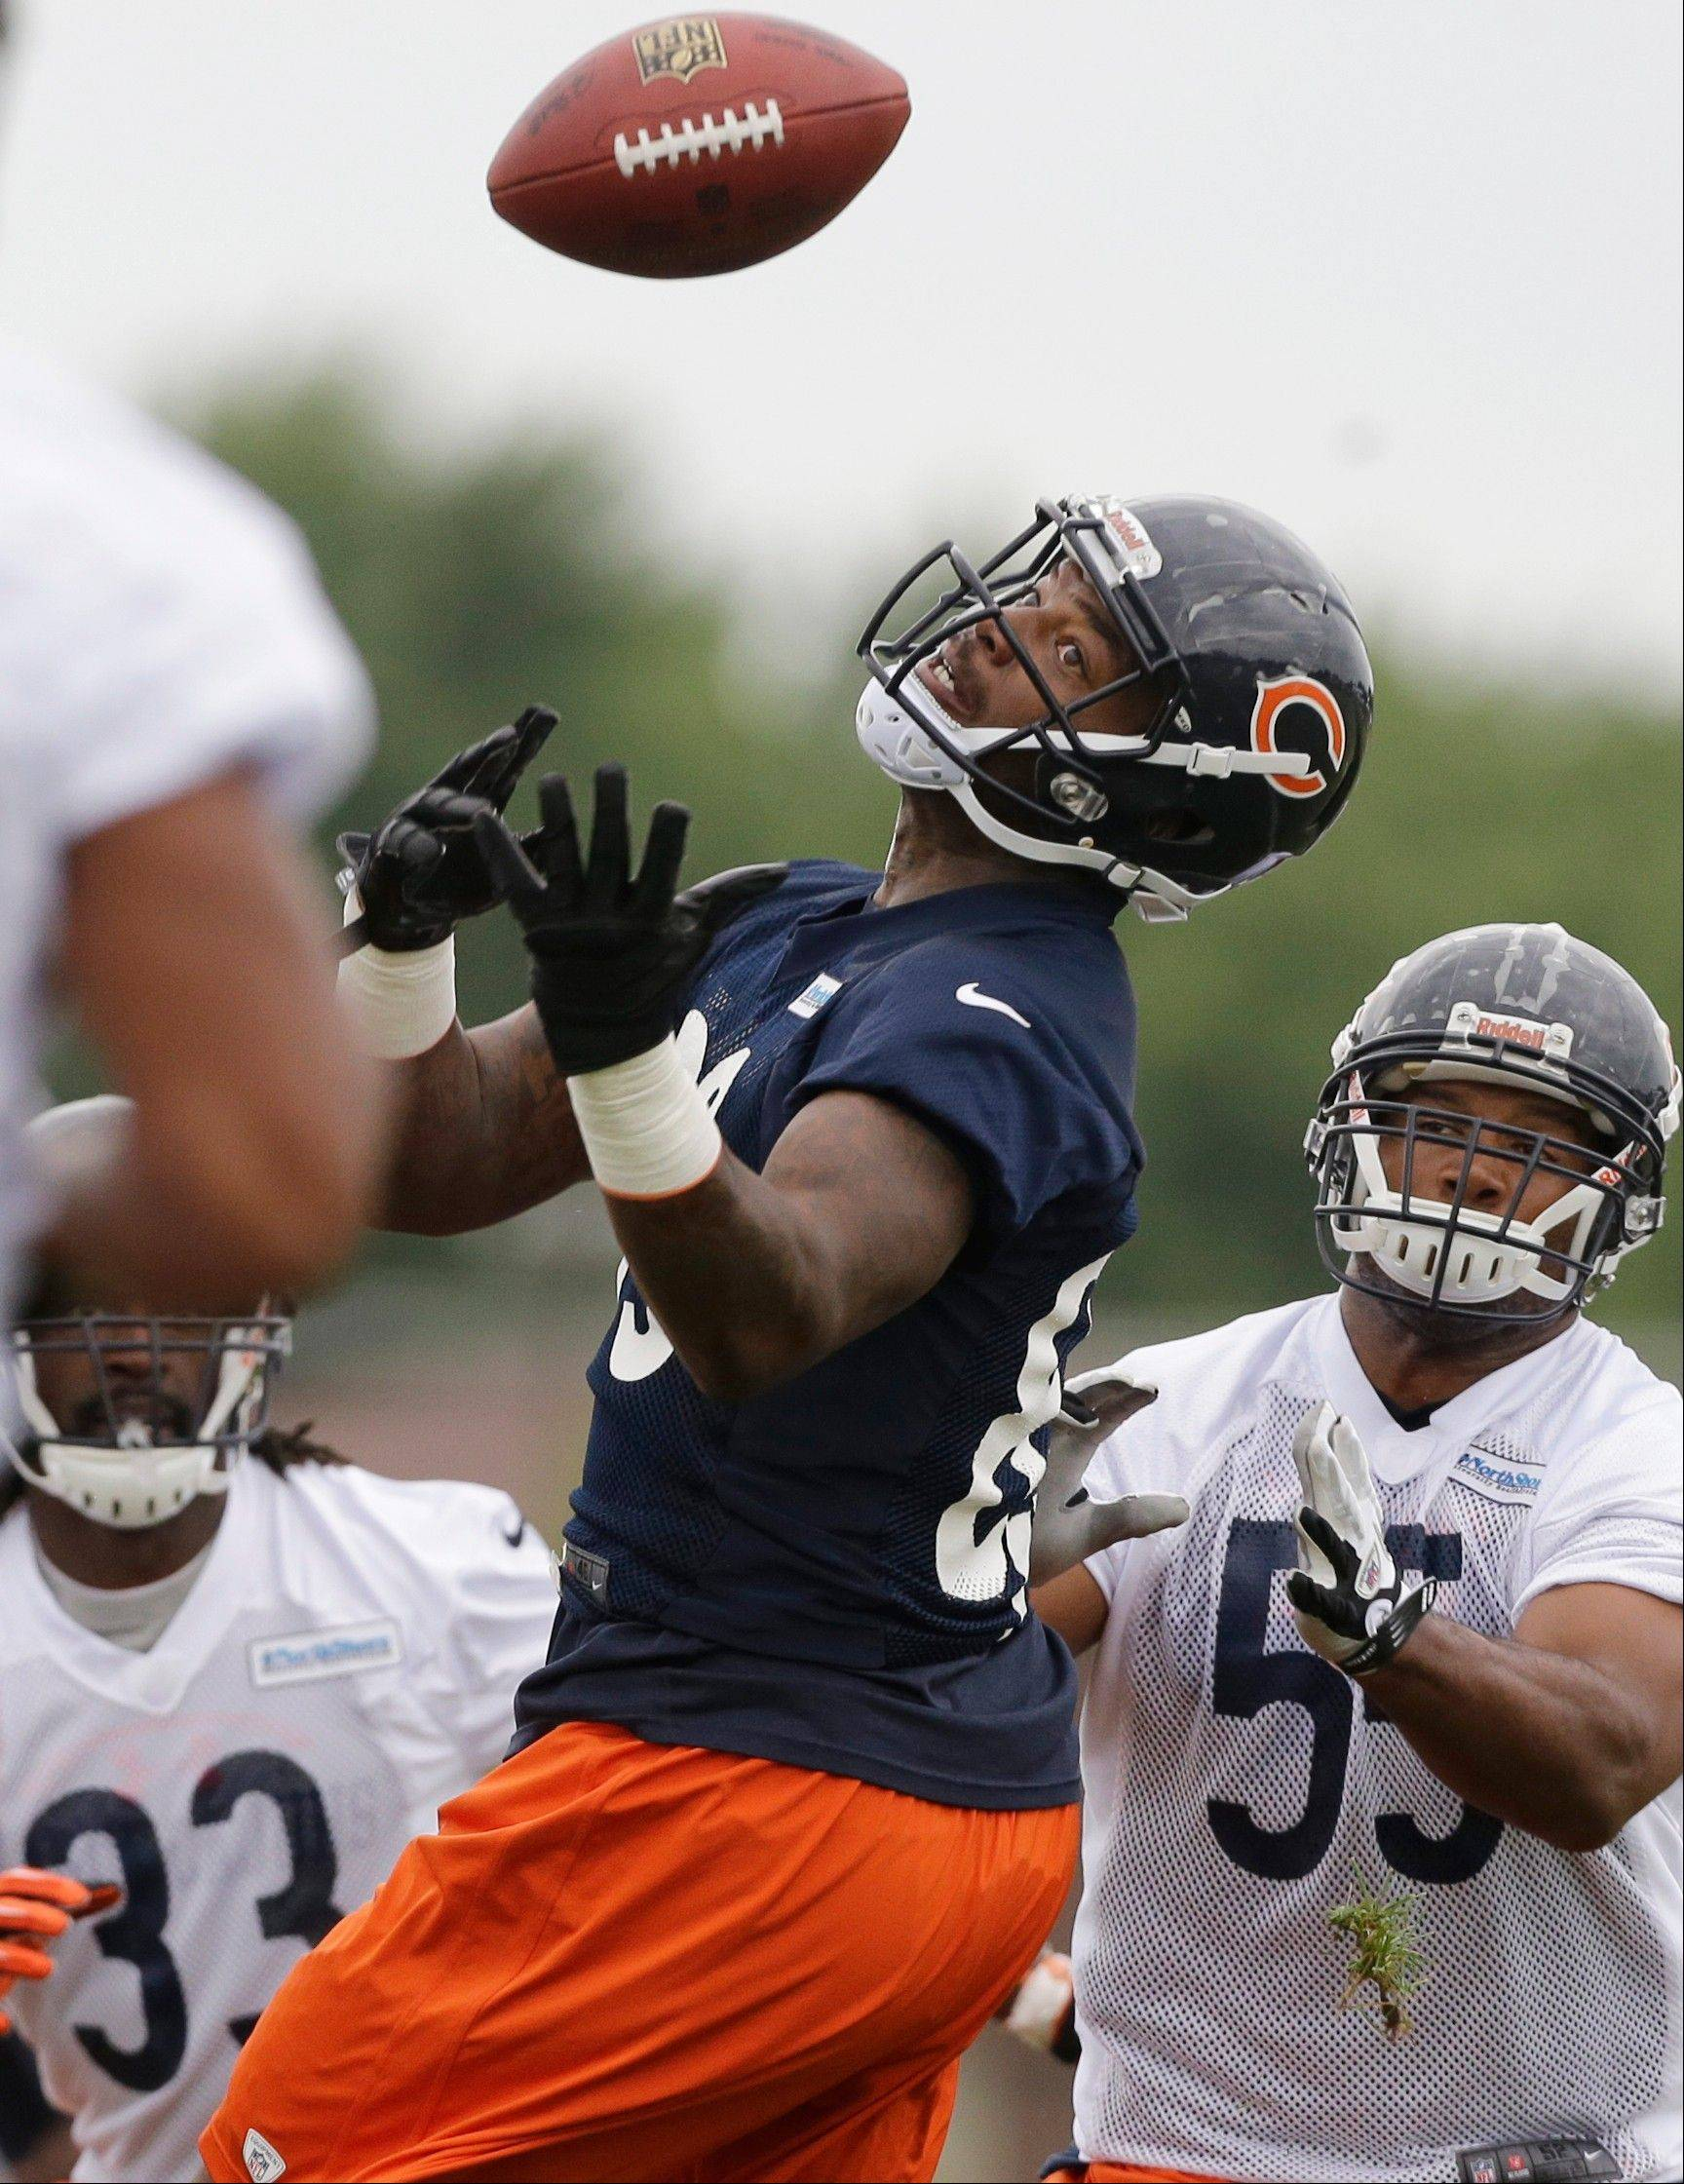 Chicago Bears tight end Martellus Bennett (83) tries to catch a ball during NFL football training camp Friday, July 26, 2013, at Olivet Nazarene University in Bourbonnais, Ill.